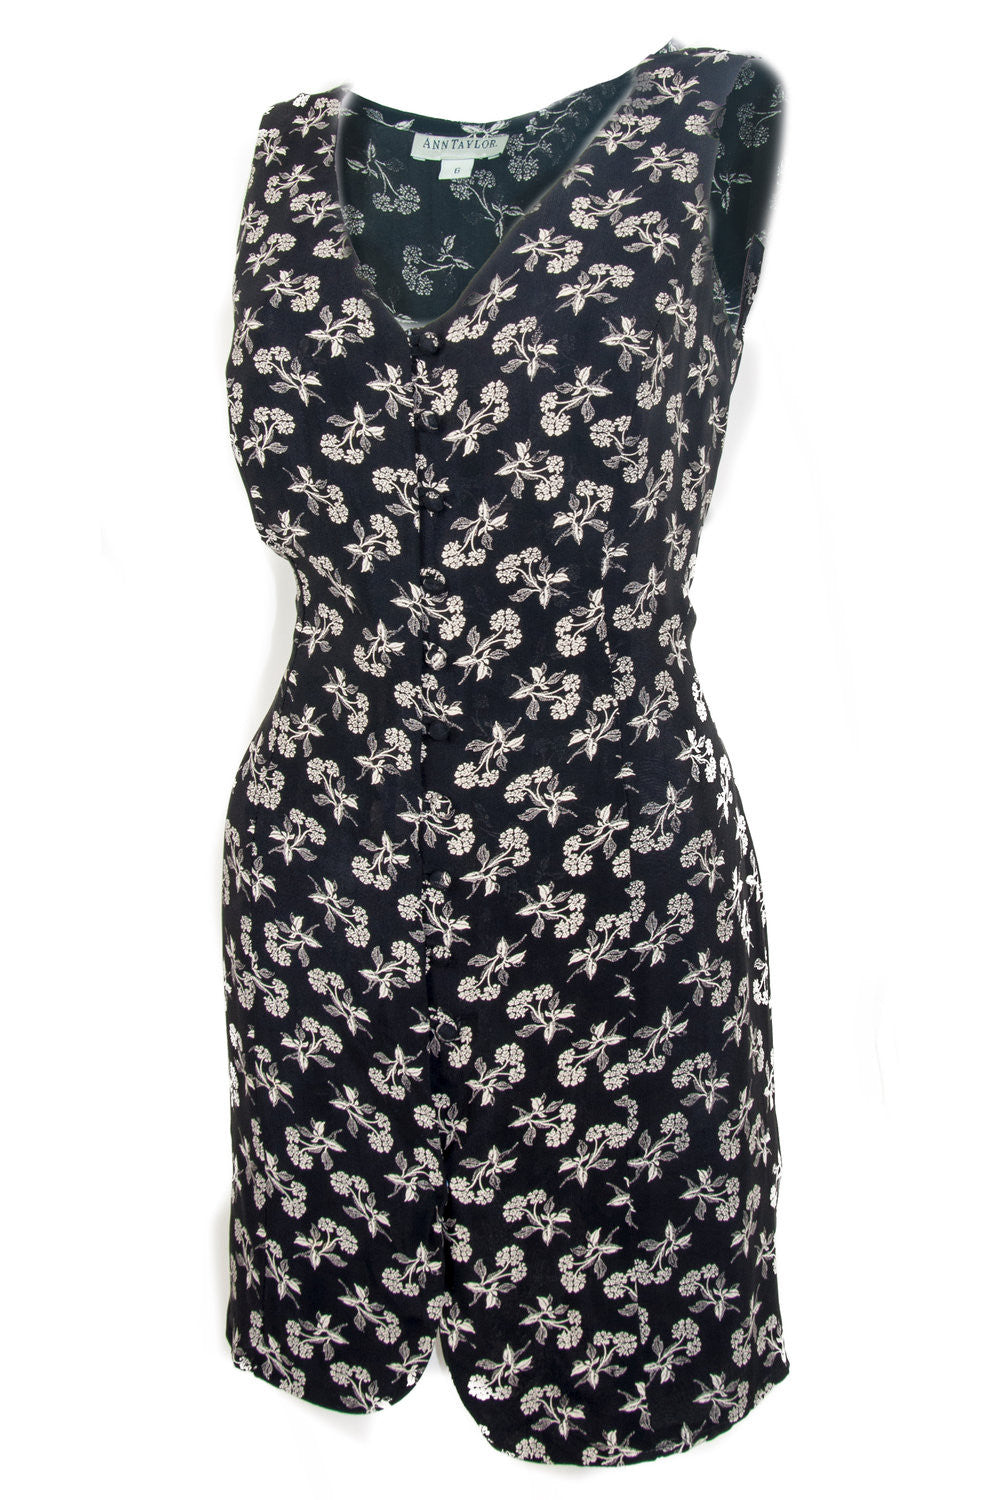 Side view of vintage sleeveless tunic with all-over floral print tie strings at back and front button closure.